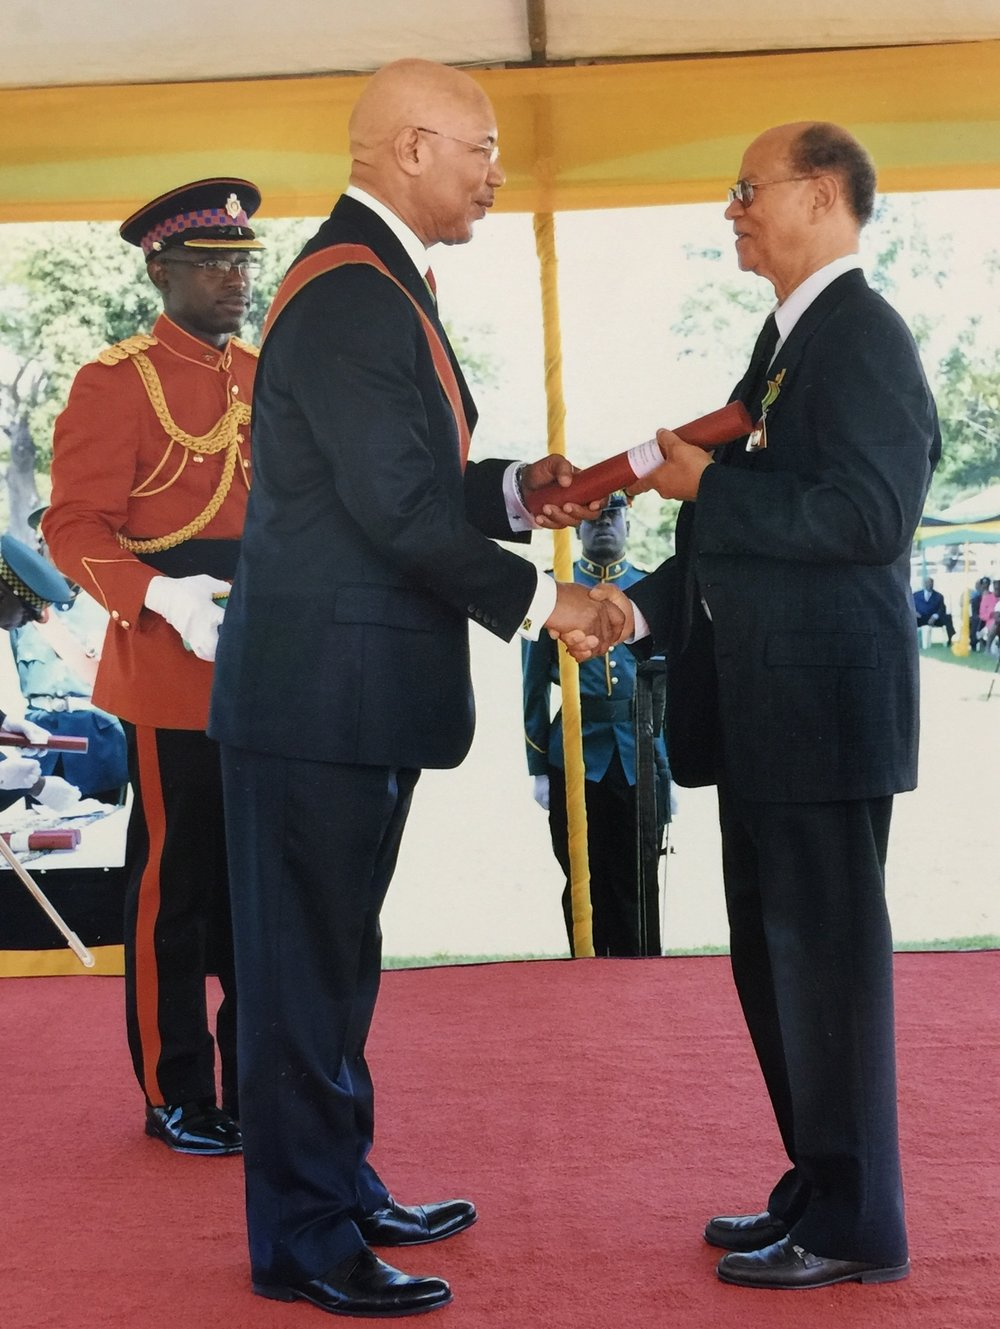 Tower Isles' President Mr. Patrick Jolly OD receiving his Order of Distinction; presented to him by the government of Jamaica by the Governor General of Jamaica.